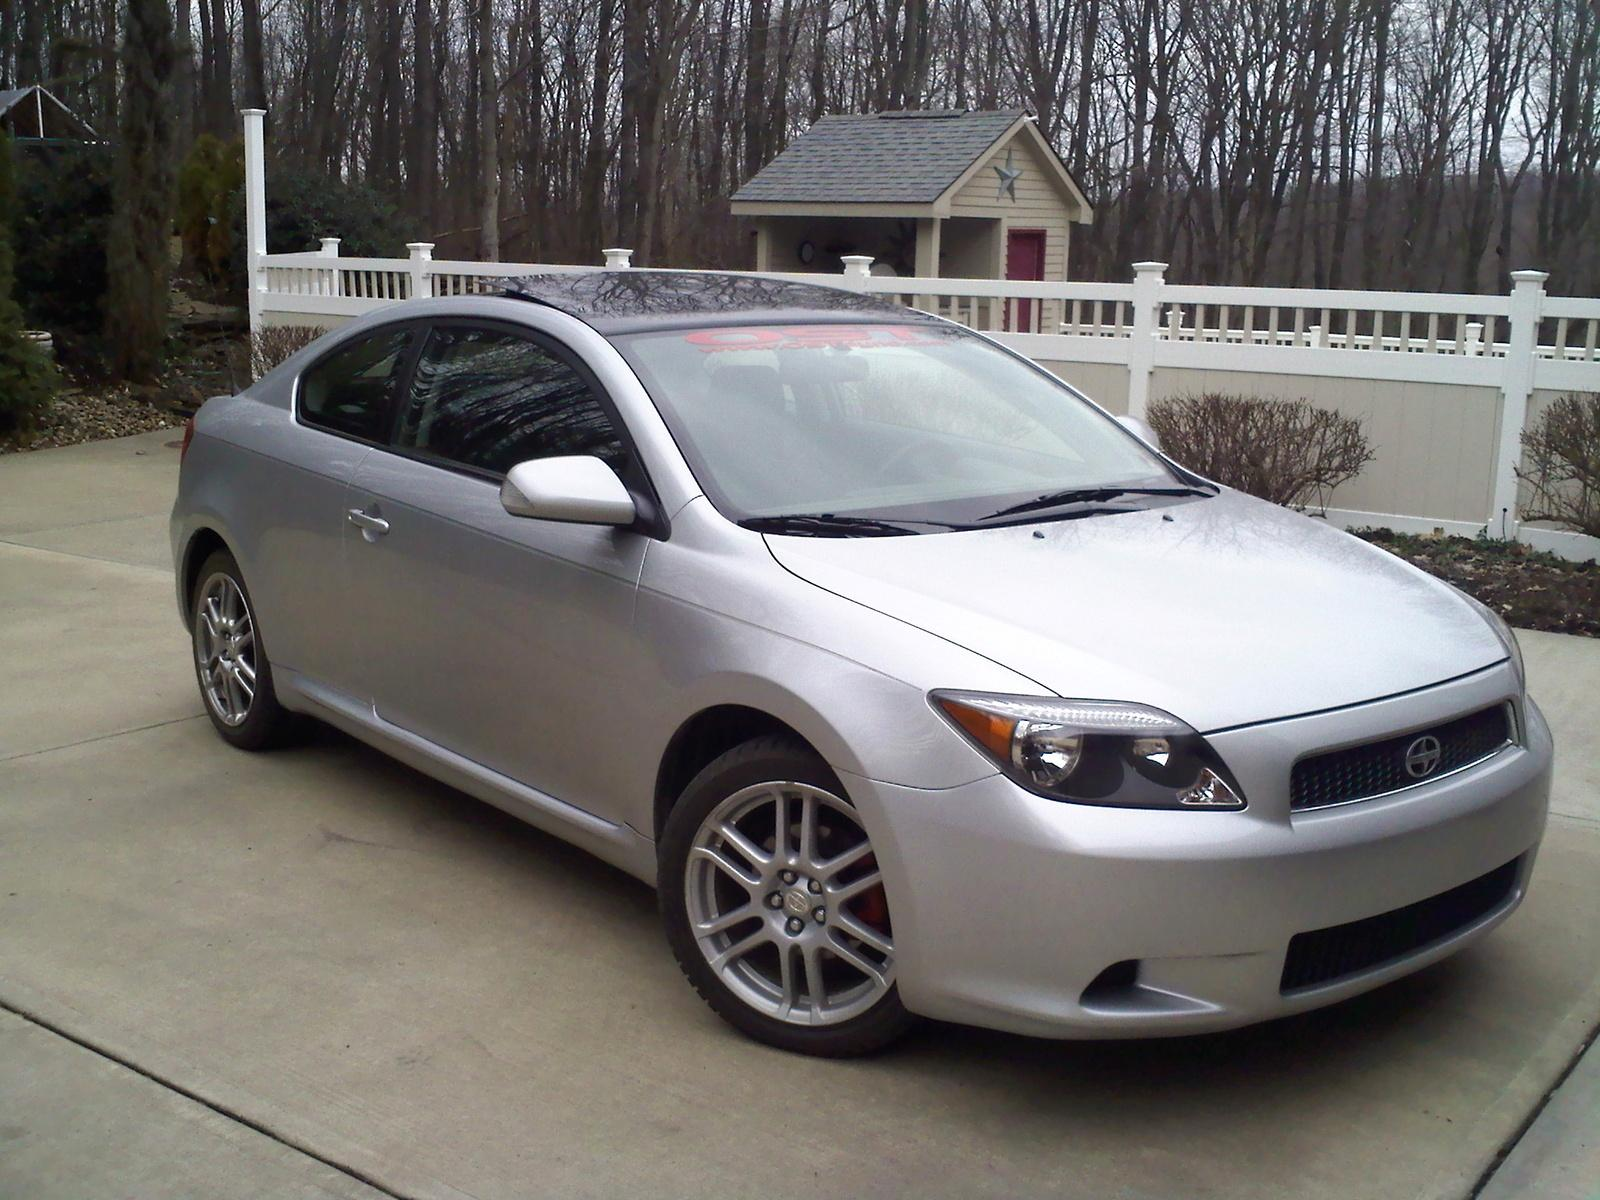 2005 scion tc information and photos zombiedrive. Black Bedroom Furniture Sets. Home Design Ideas